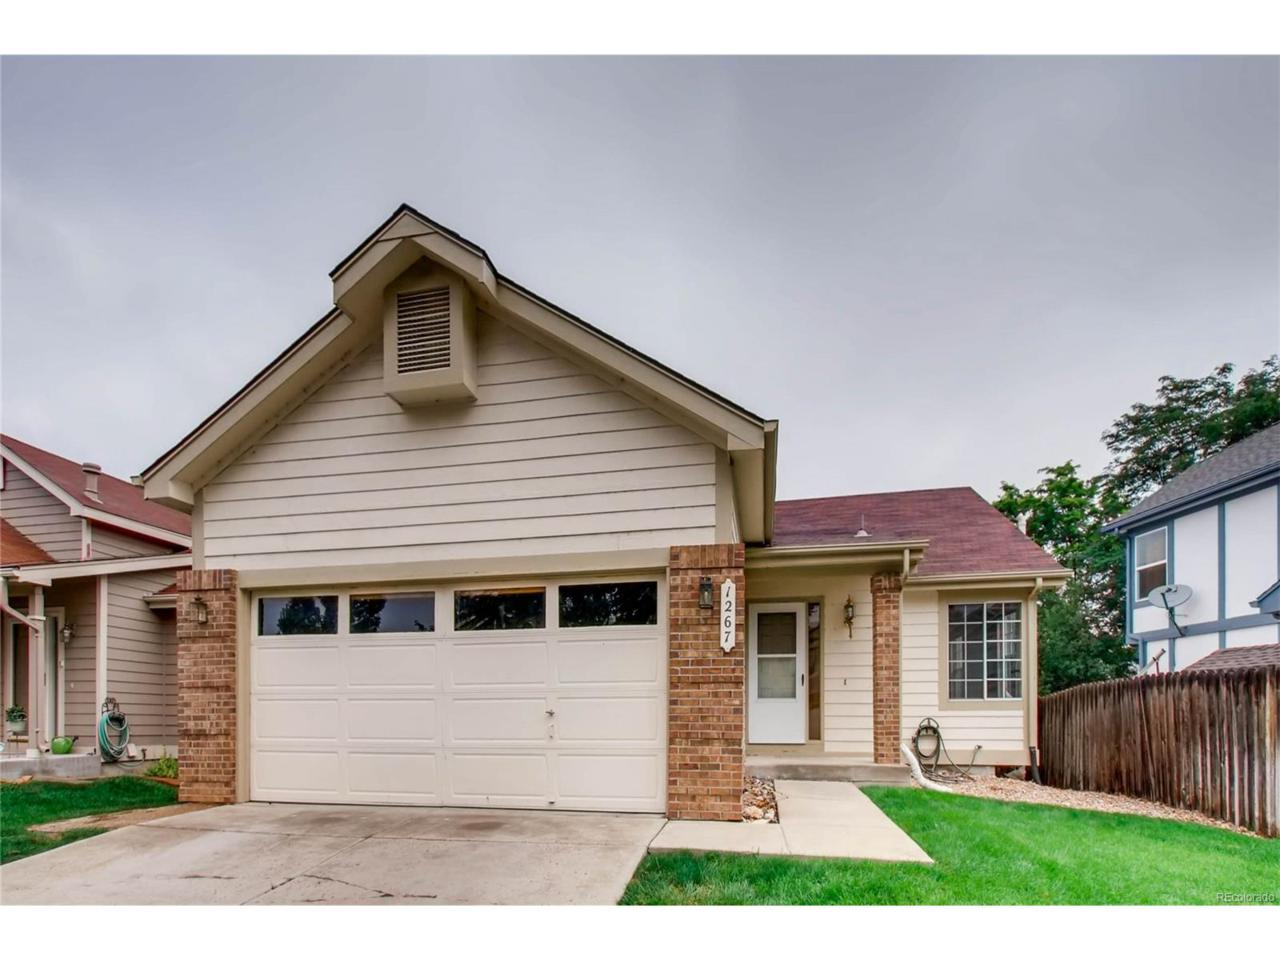 1267 W 133rd Circle, Westminster, CO 80234 (MLS #3958947) :: 8z Real Estate